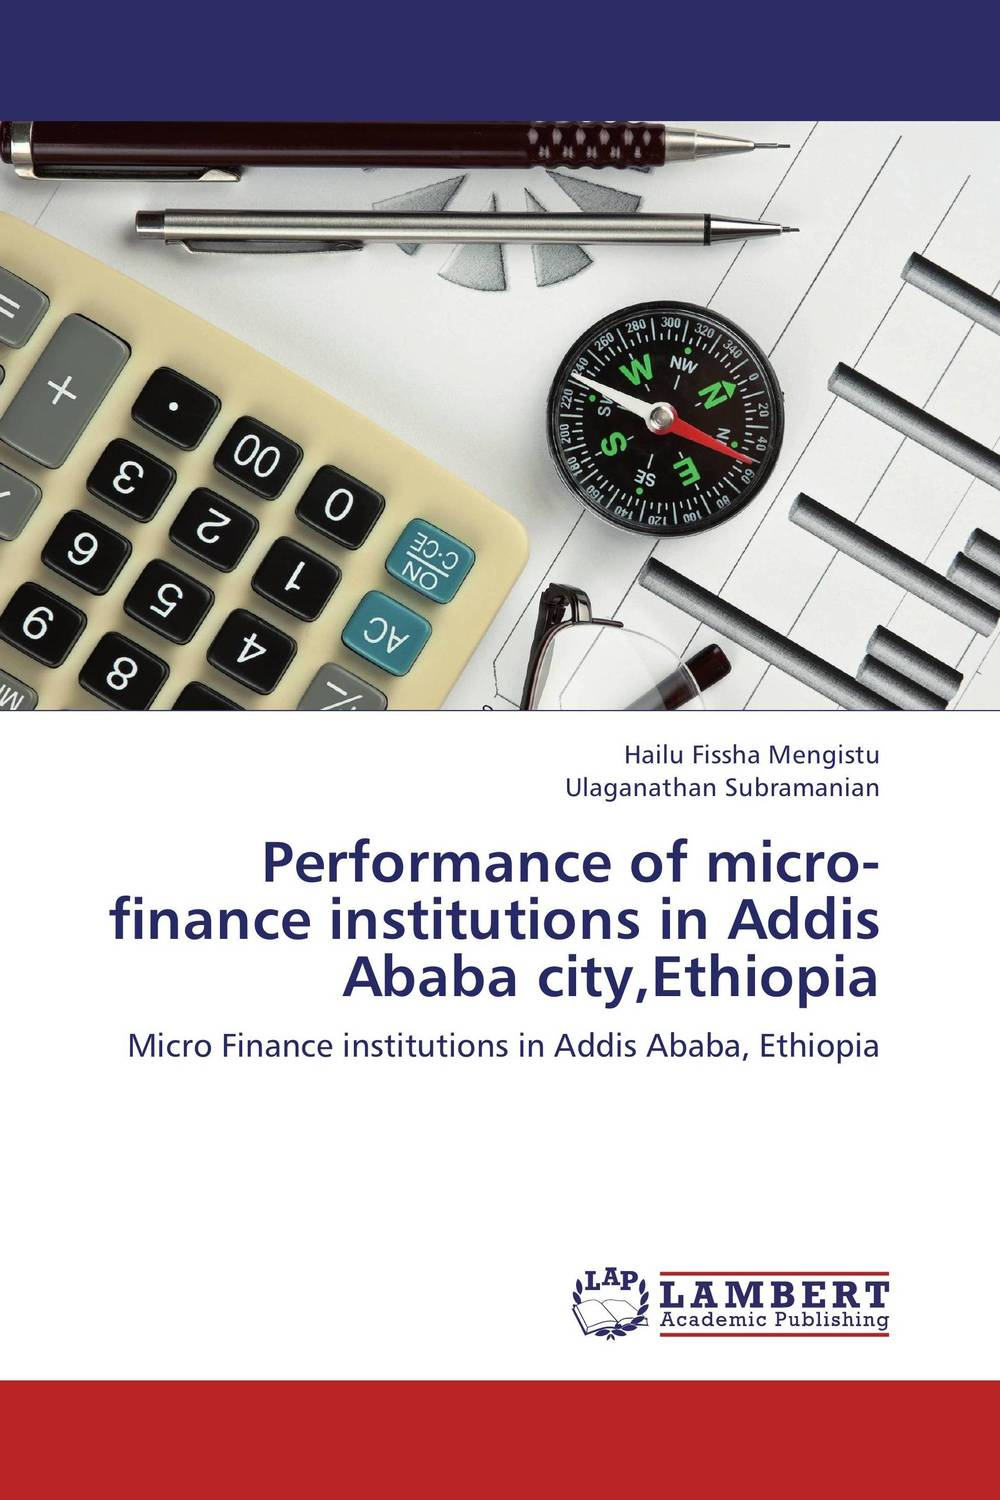 Performance of micro-finance institutions in Addis Ababa city,Ethiopia